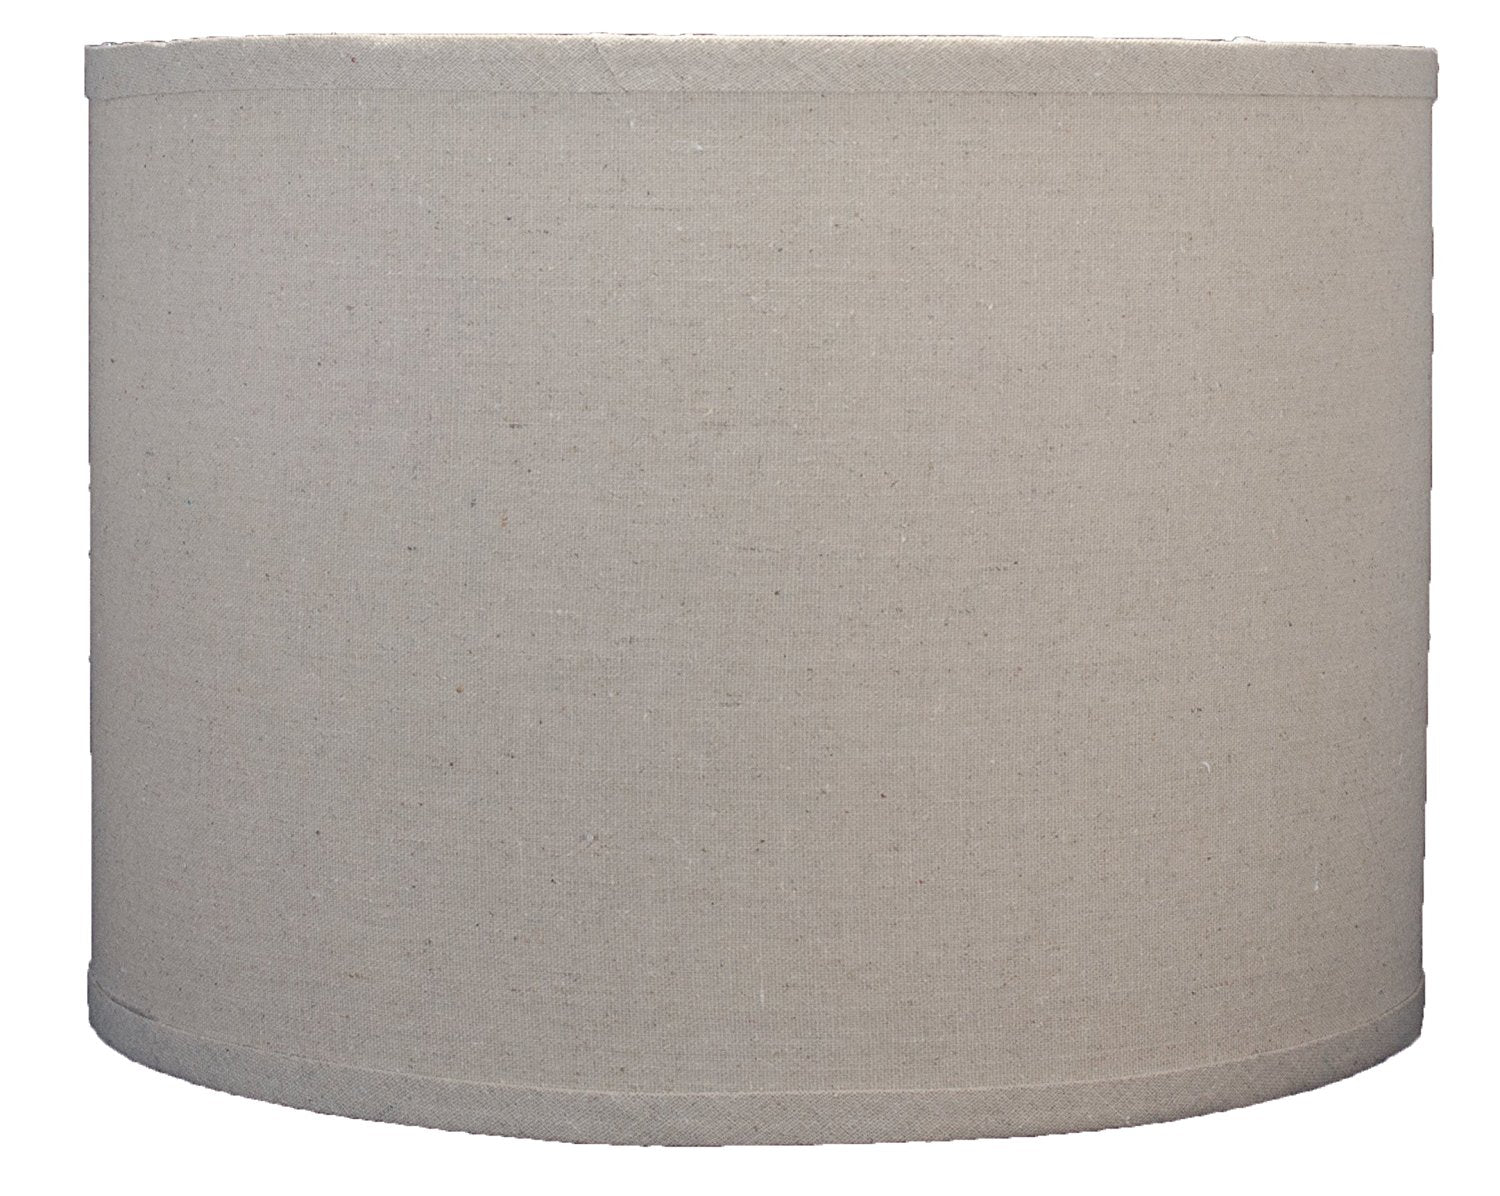 Linen Drum Lamp Shade, 14-inch By 14-inch By 10-inch, Natural, Spider